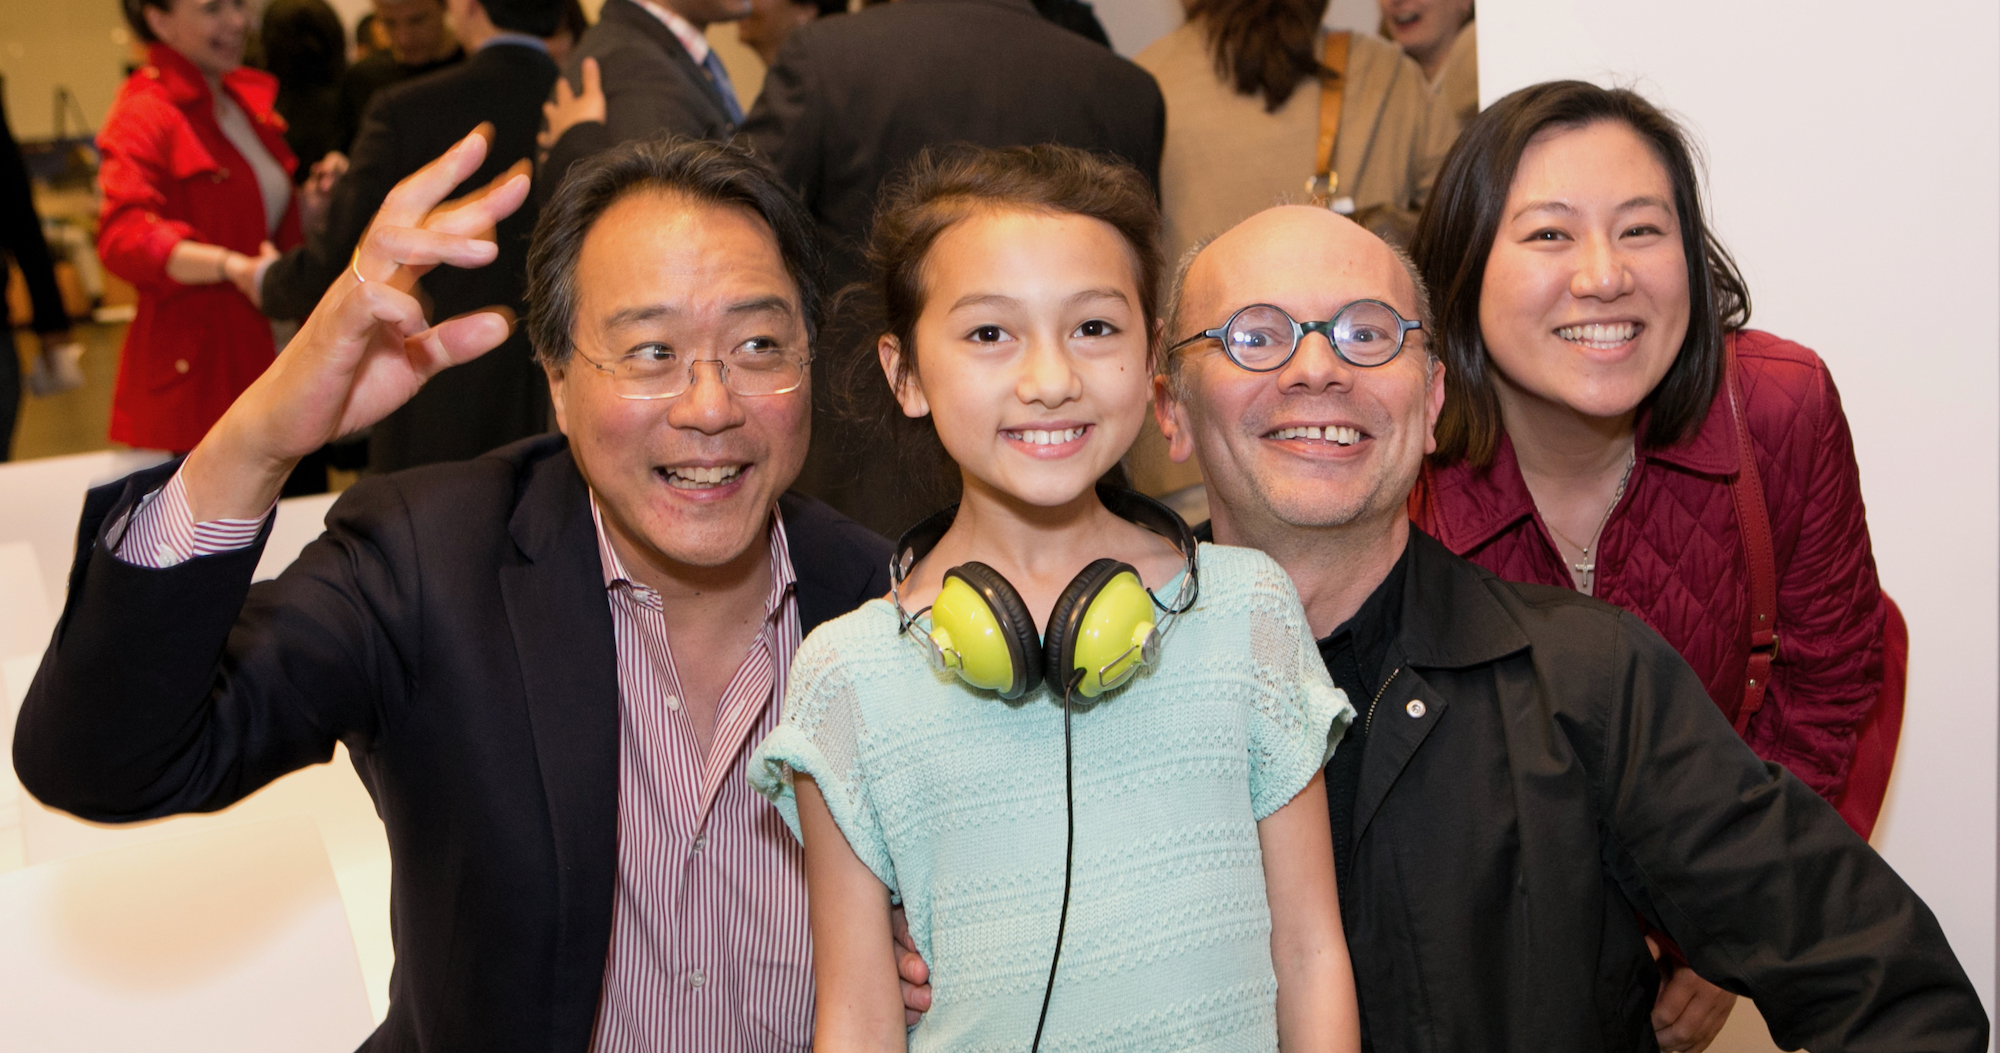 Paul Smith and his daughter, Frances, with Yo-Yo Ma (left) and co-founder Ann Shen (right) at Harvard Innovation Lab.